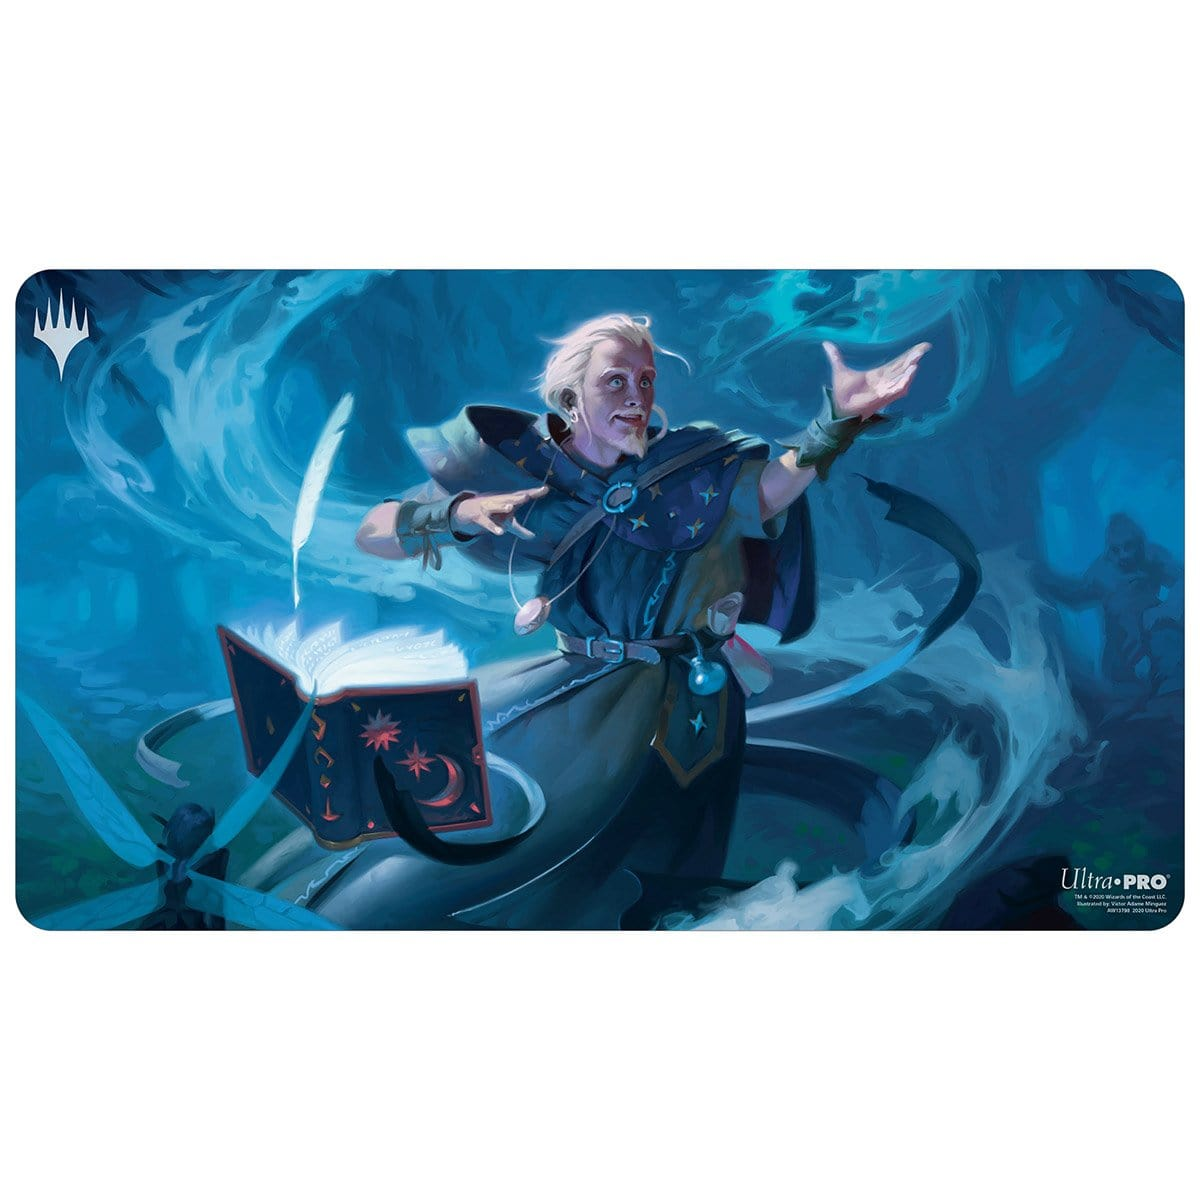 Chulane, Teller of Tales Playmat